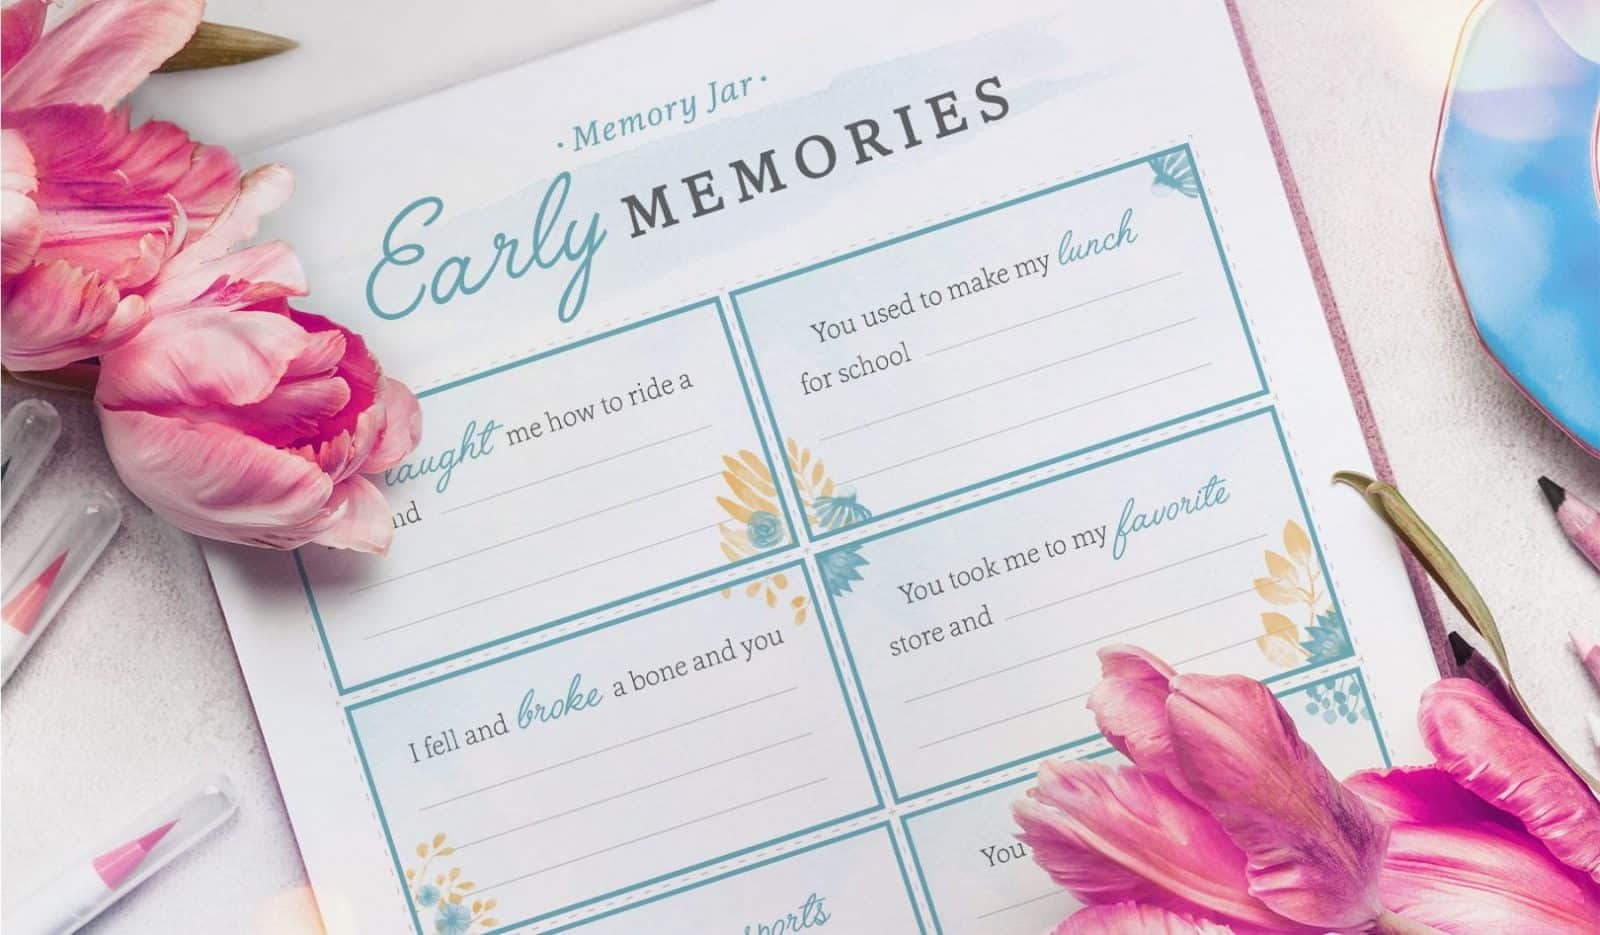 20 Memorable DIY Mother's Day Ideas